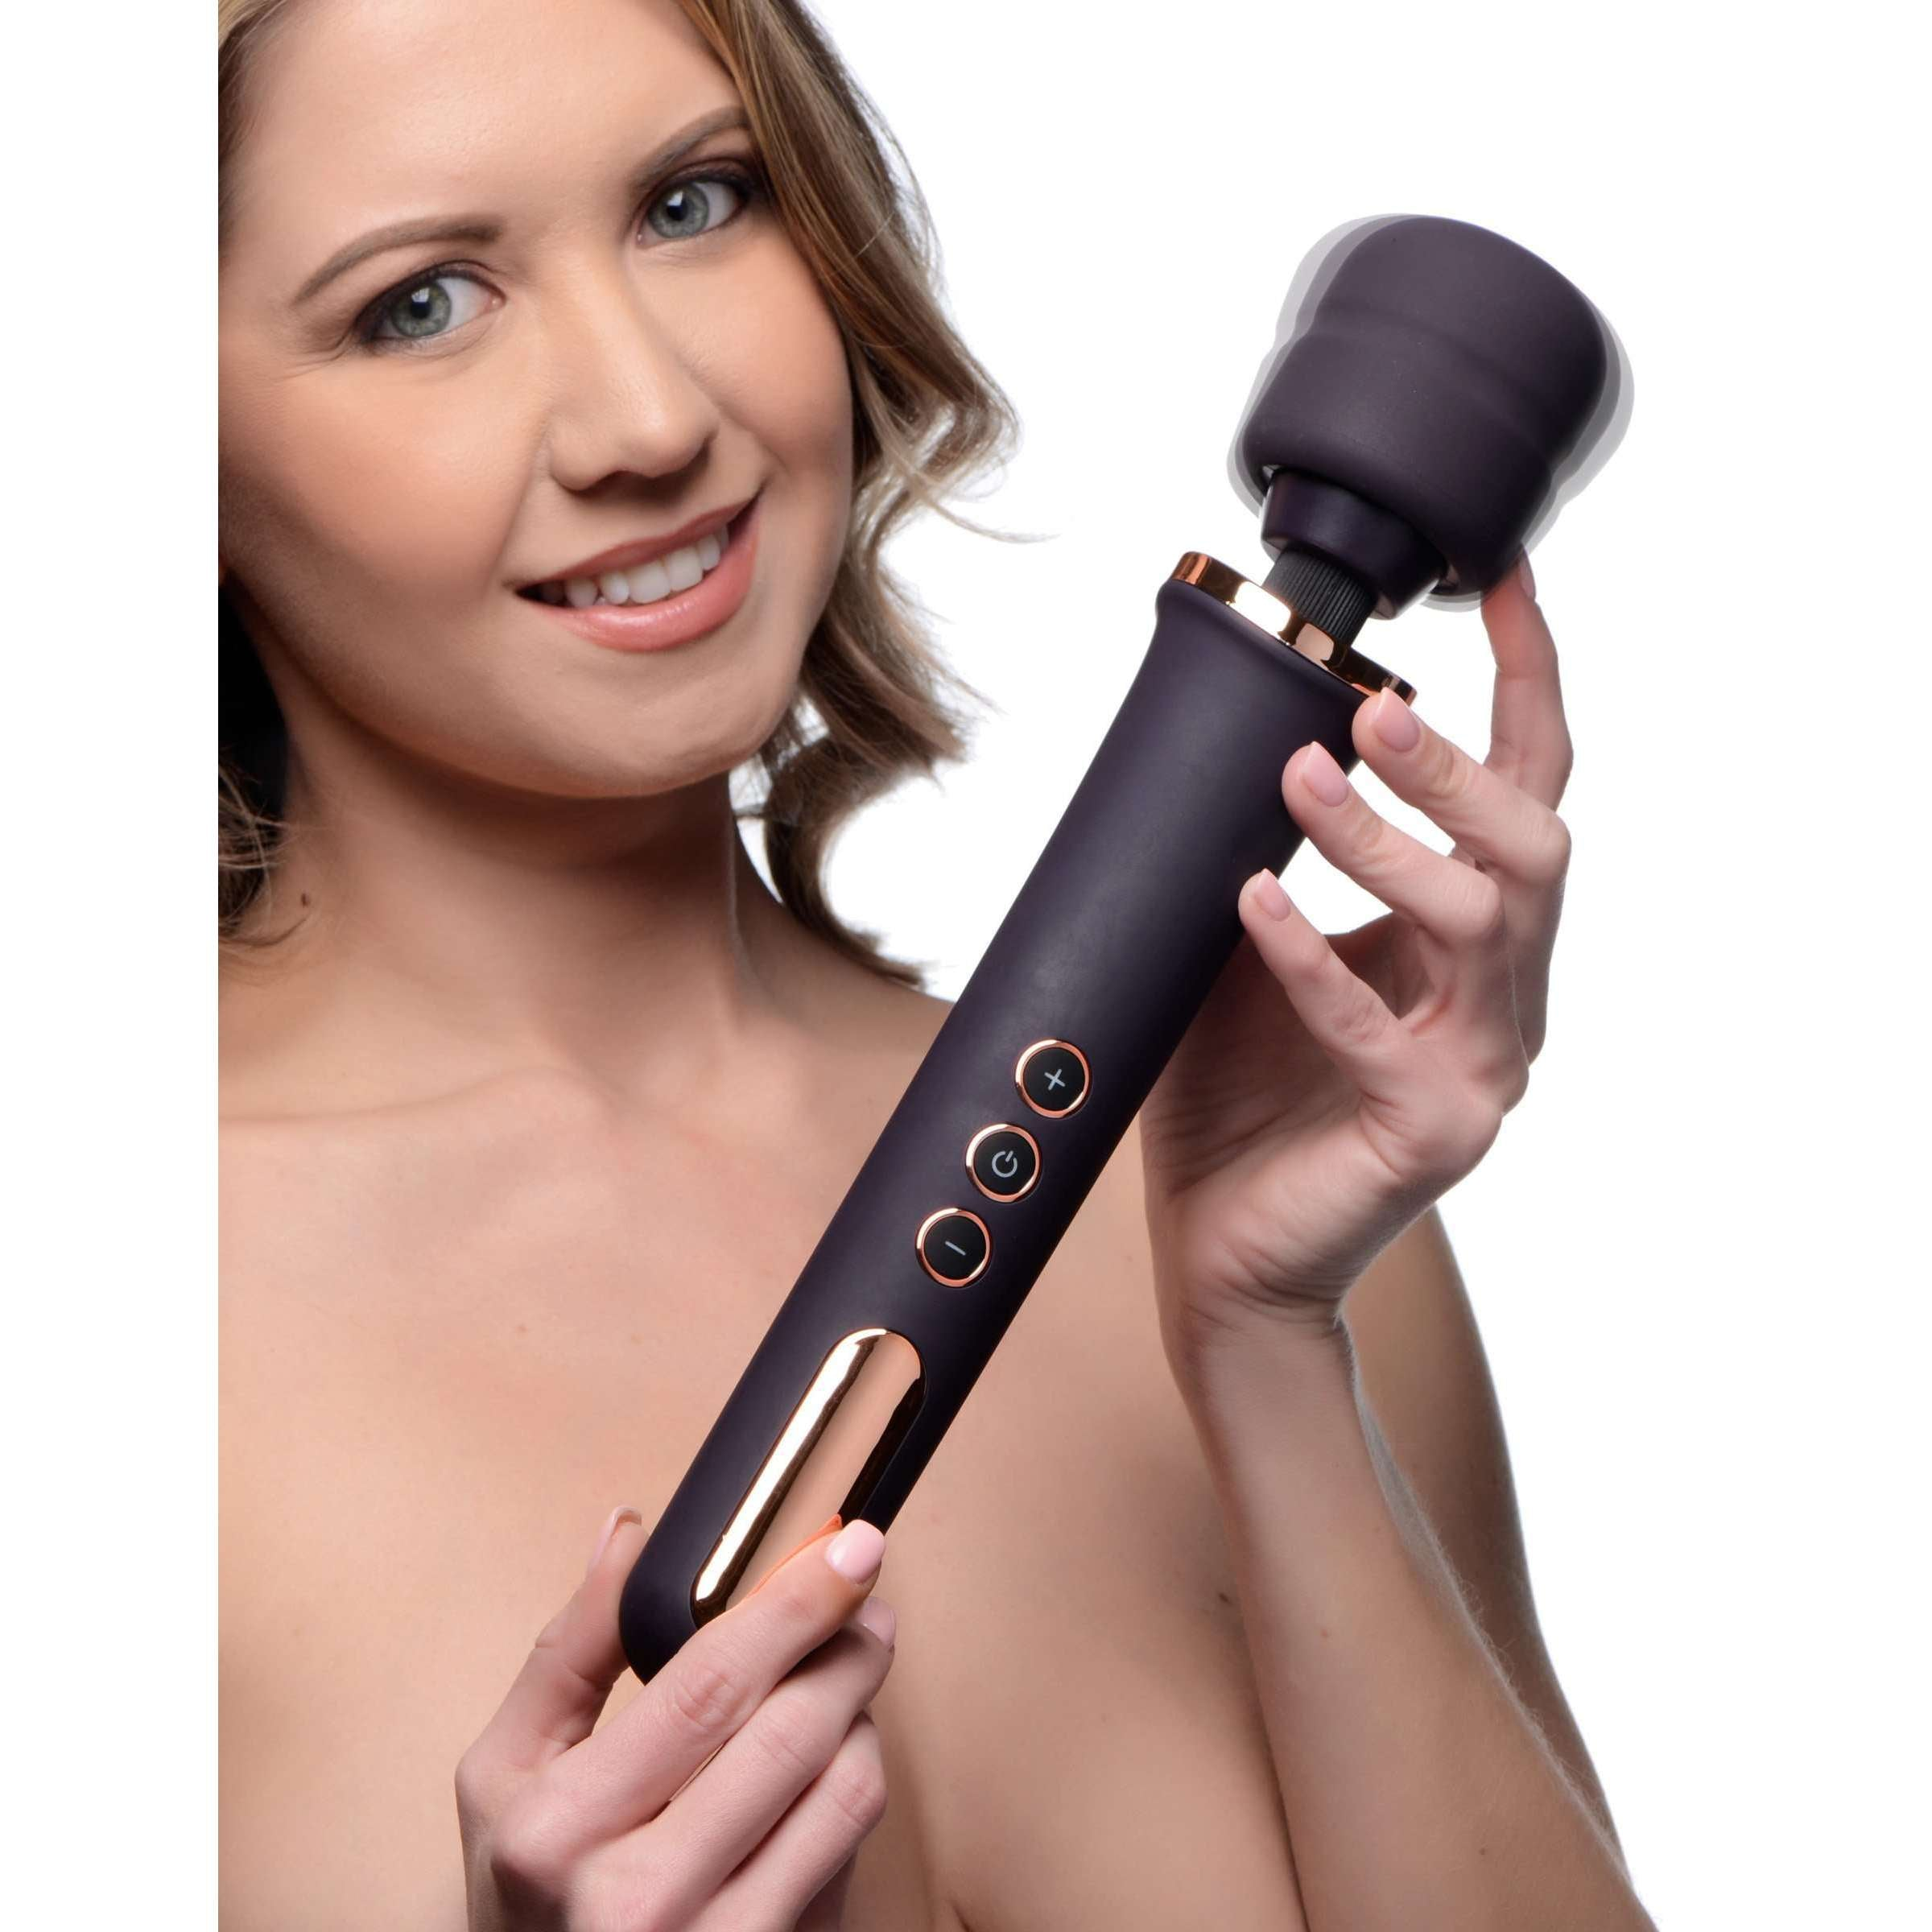 Scepter 50X Silicone Wand Massager